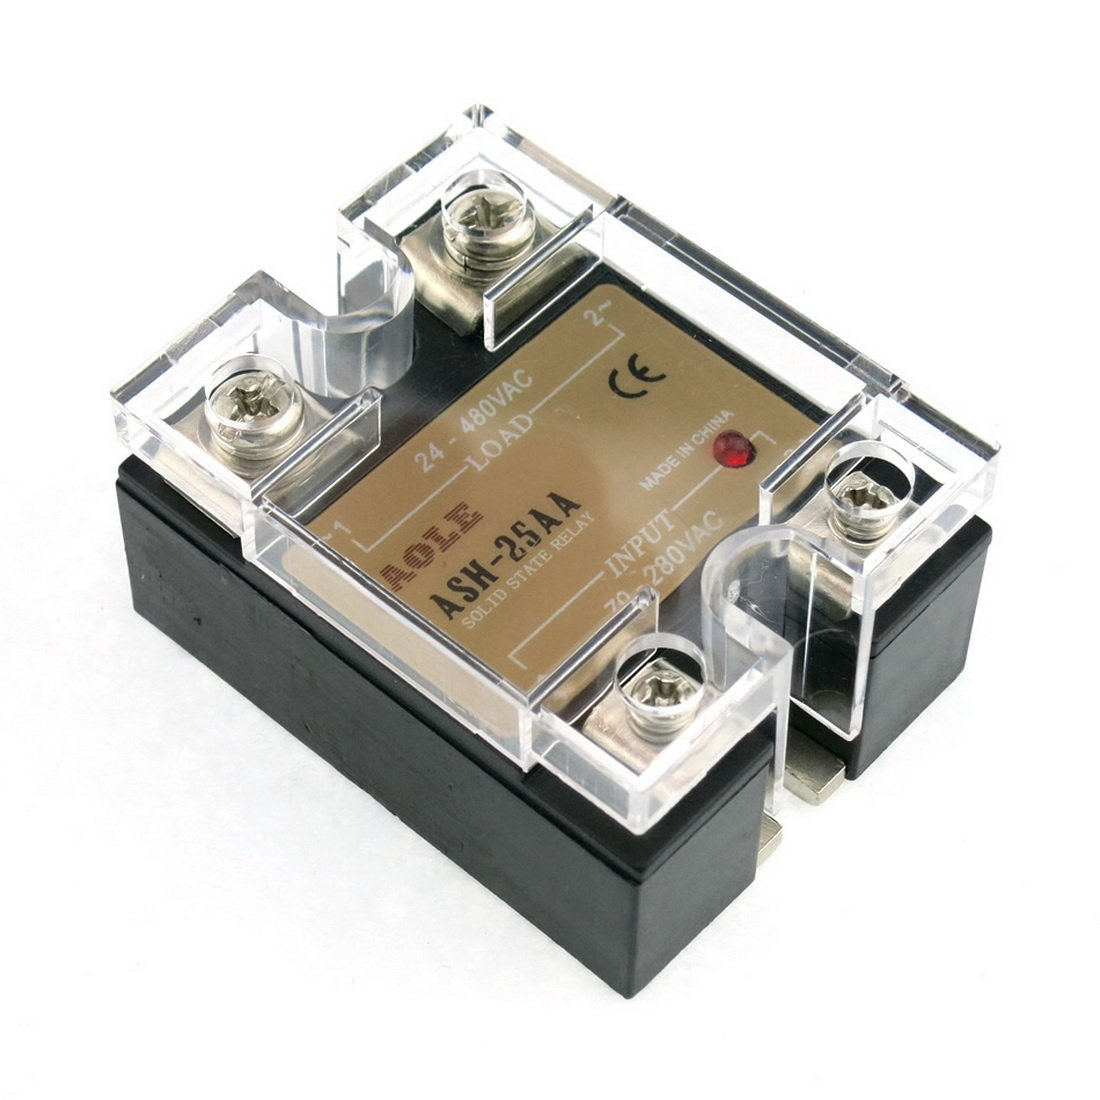 Werfamily Ssr Solid State Relay Ac 70 280v 24 480v Circuit Further Clock Pulse Generator Industrial Scientific